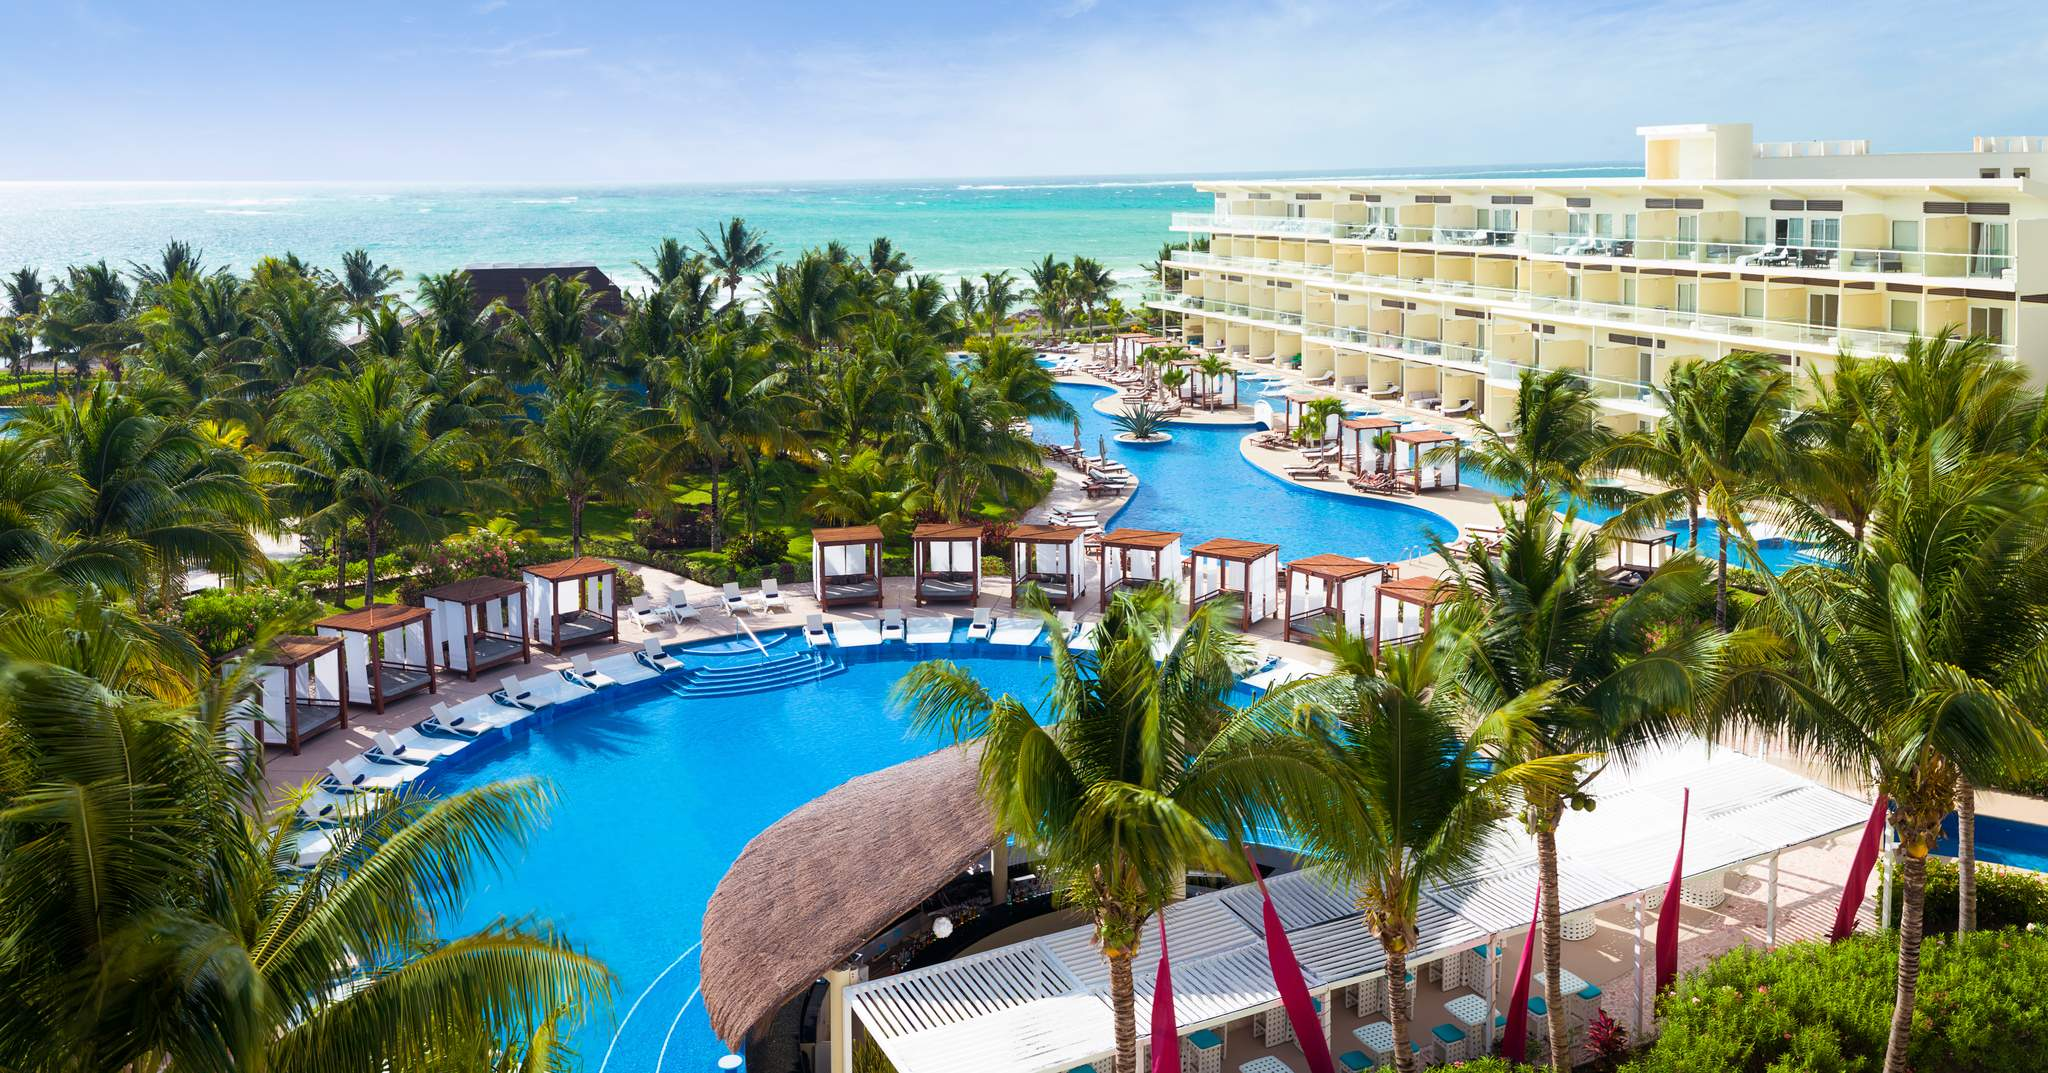 An offpeak rate for the same hotel, the Ritz-Carlton Cancun, on October via TravelSort's wholesale rates would end up saving you about 70%, just by going in fall, rather than winter break.